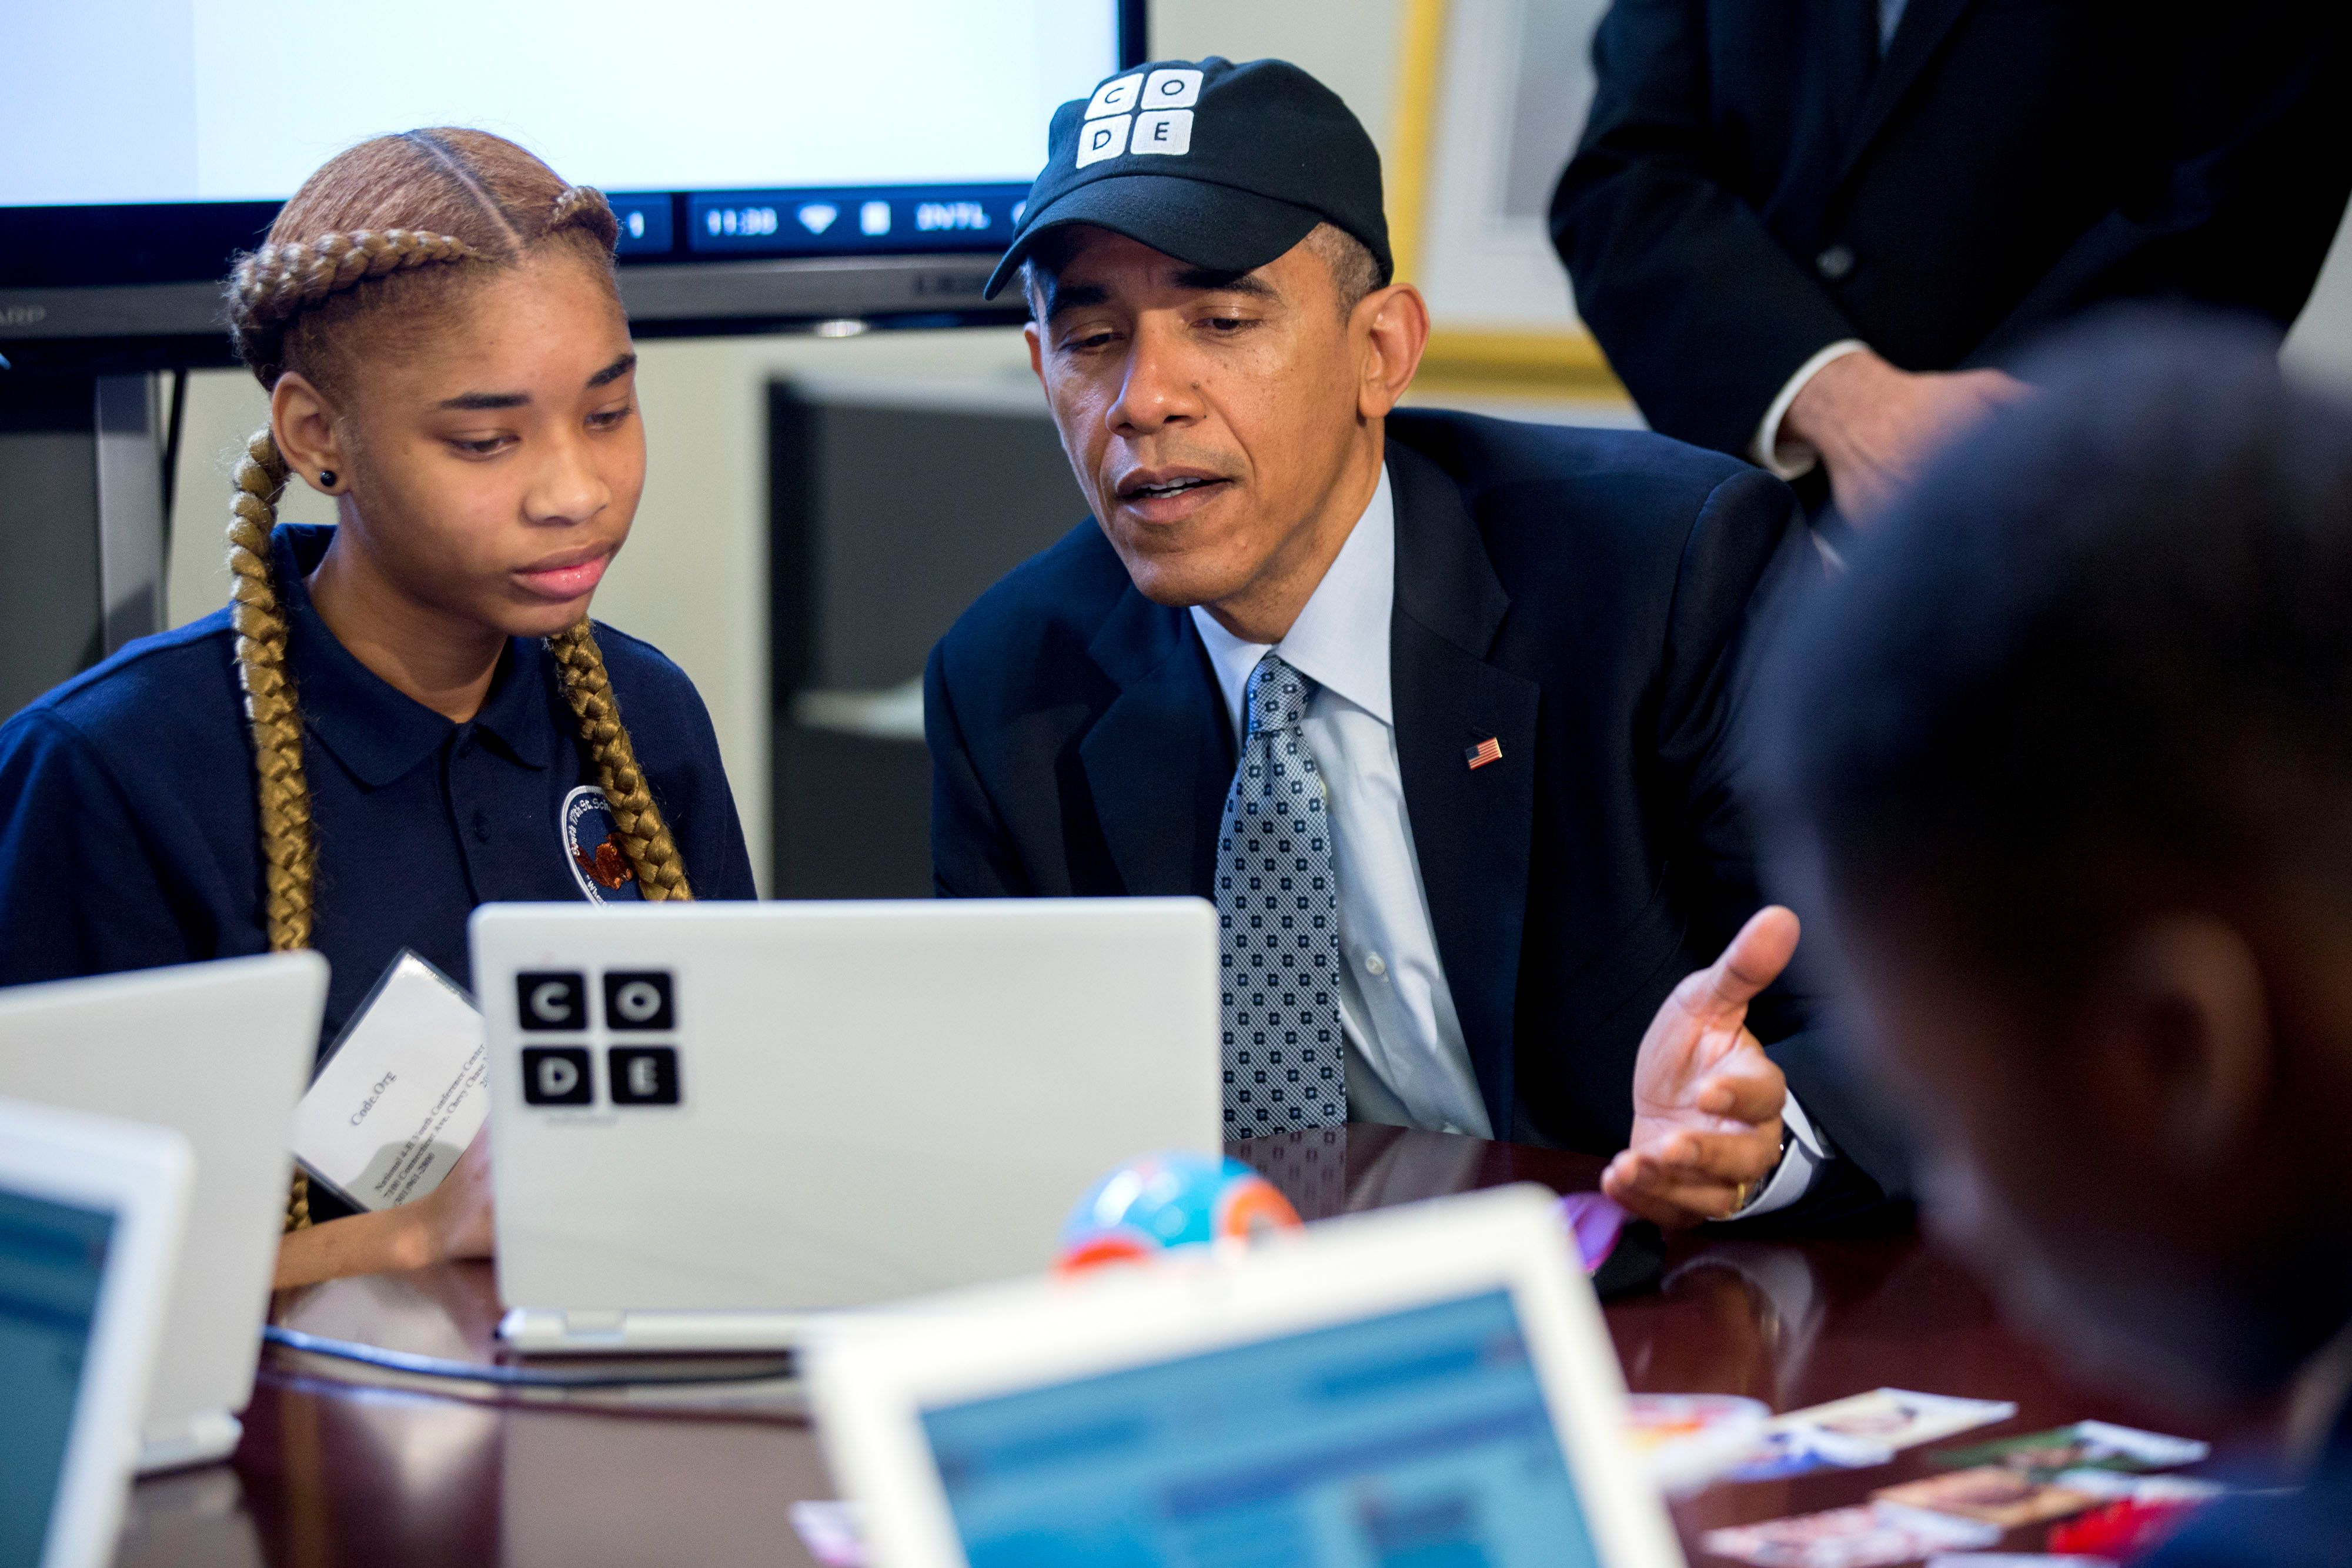 WASHINGTON, DC - DECEMBER 8:  U.S. President Barack Obama participates in an 'Hour of Code' event with middle-school students including Adrianna Mitchell in the Eisenhower Executive Office Building next to the White House on December 8, 2014 in Washington, DC.  The event is in honor of Computer Science Education Week. (Photo by Andrew Harrer-Pool/Getty Images)